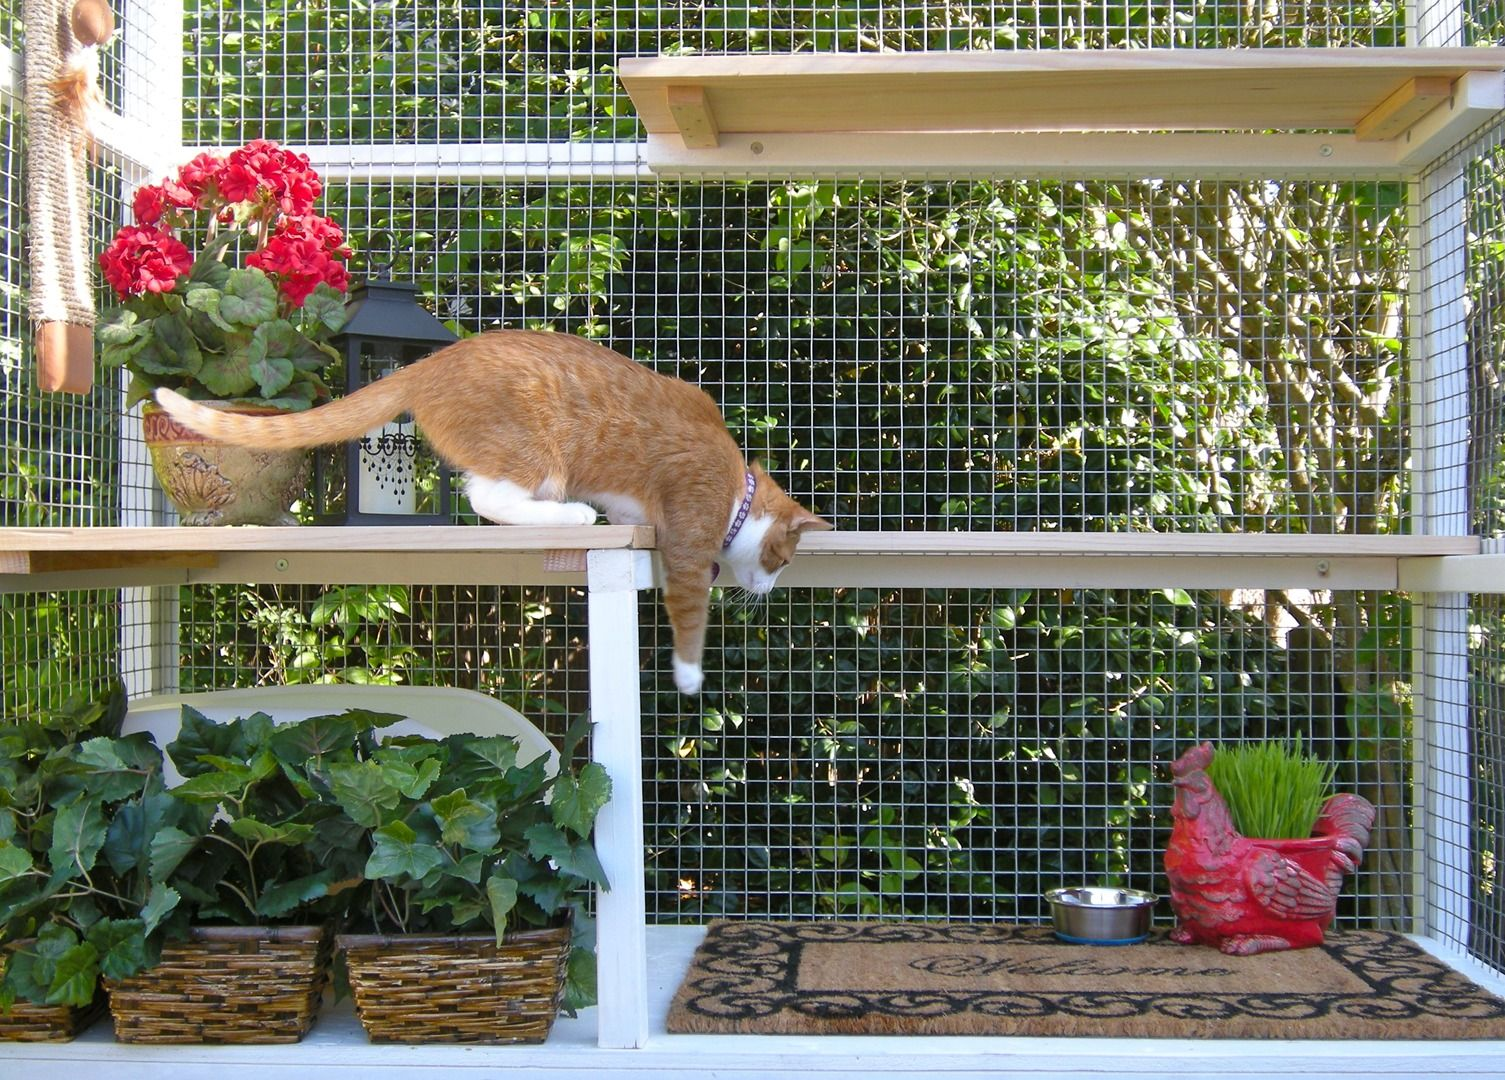 Diy catio plan the sanctuary catio plans with 6x8 and 8x10 options - Catio Spaces Diy Catio Plans And Cat Enclosures